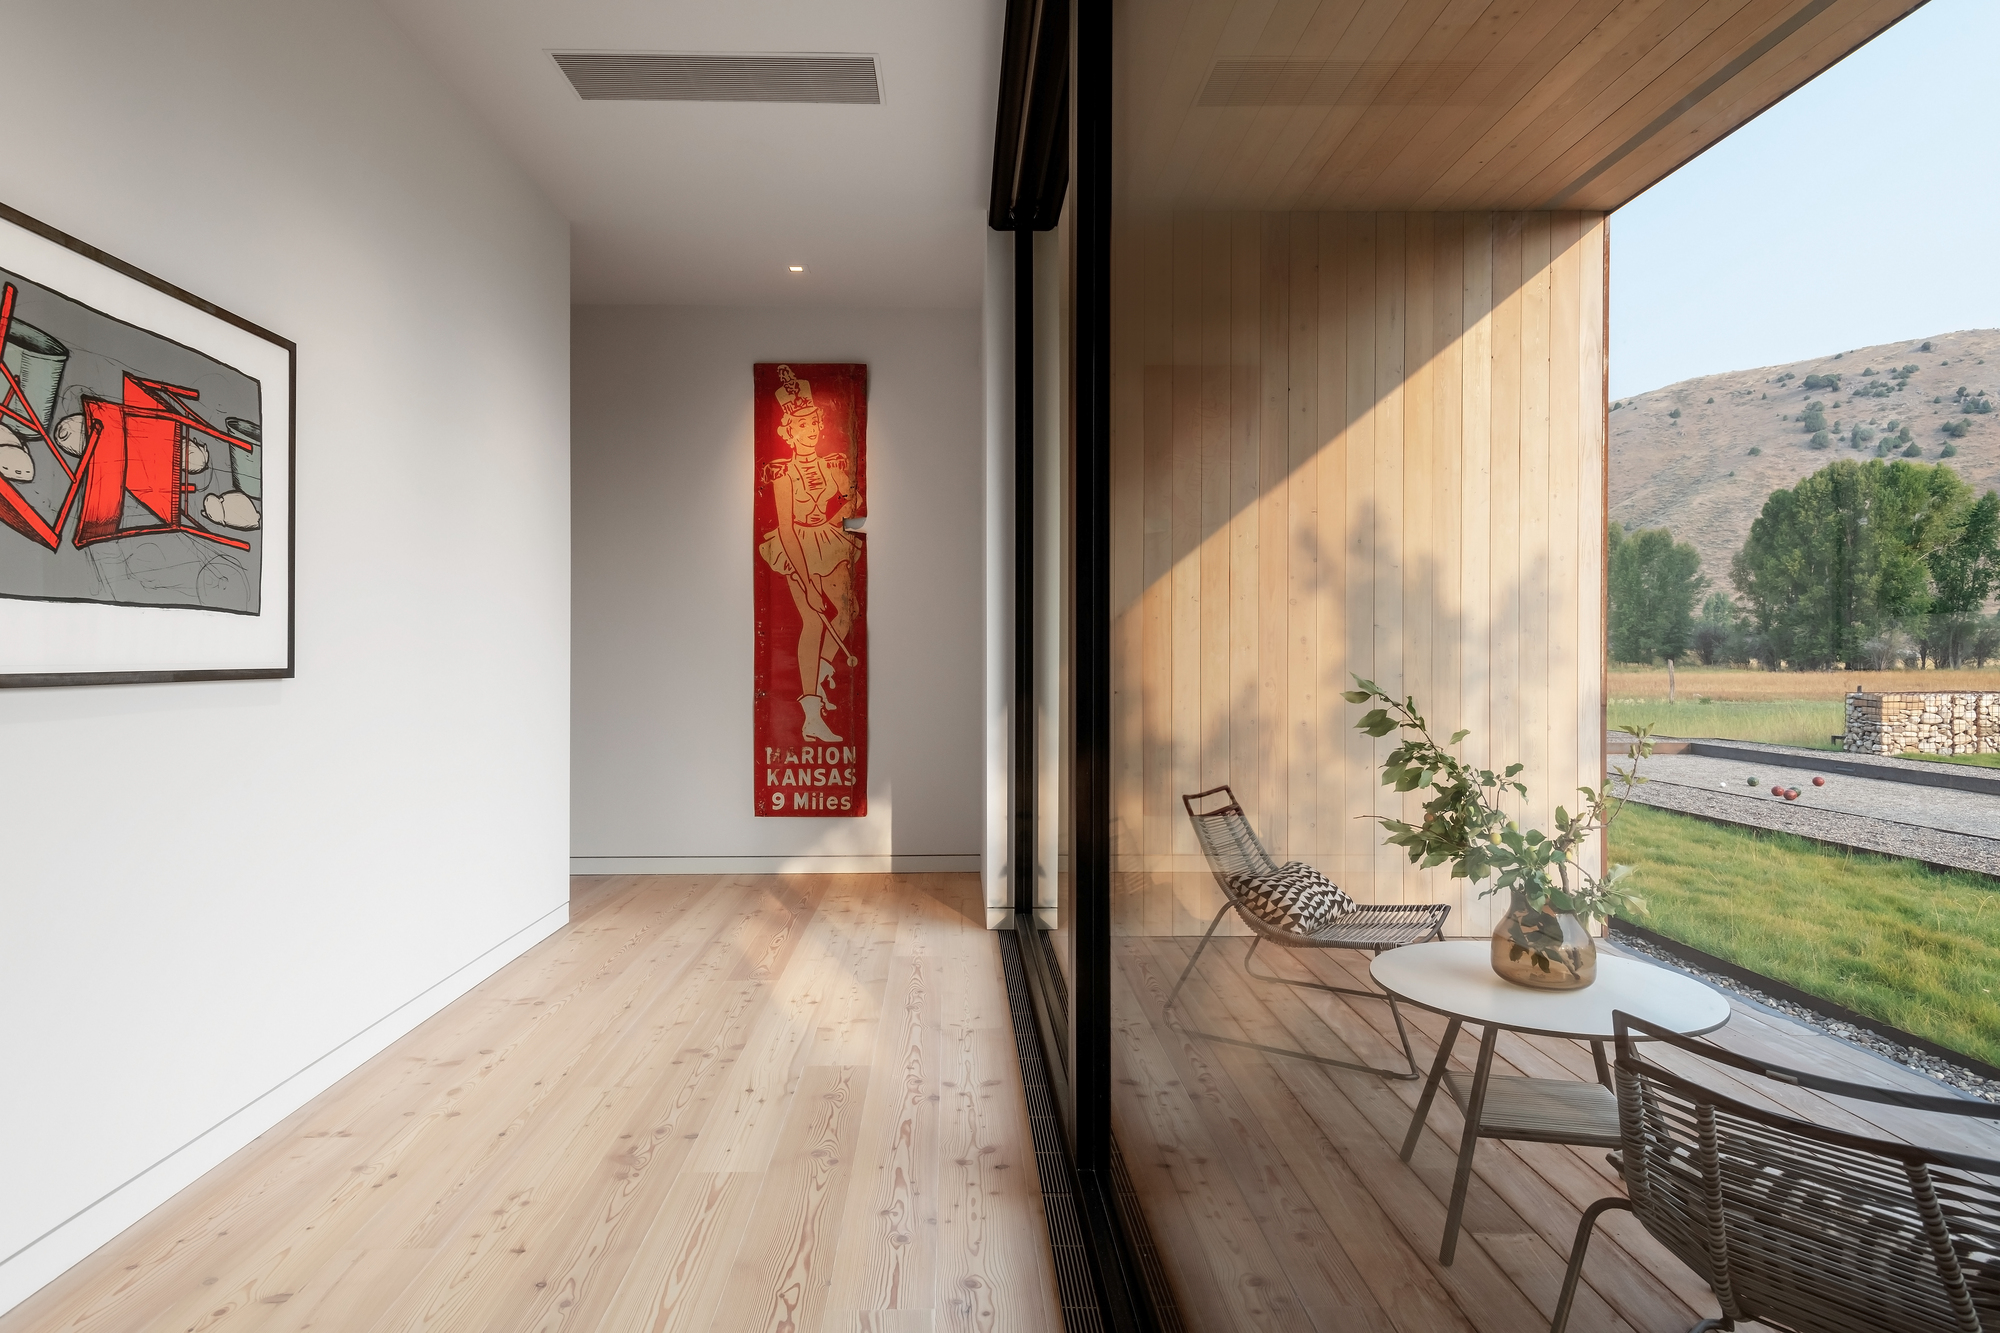 Sliding-glass-doors-connect-the-interior-of-the-house-with-the-deck-and-majestic-views-outside-59025